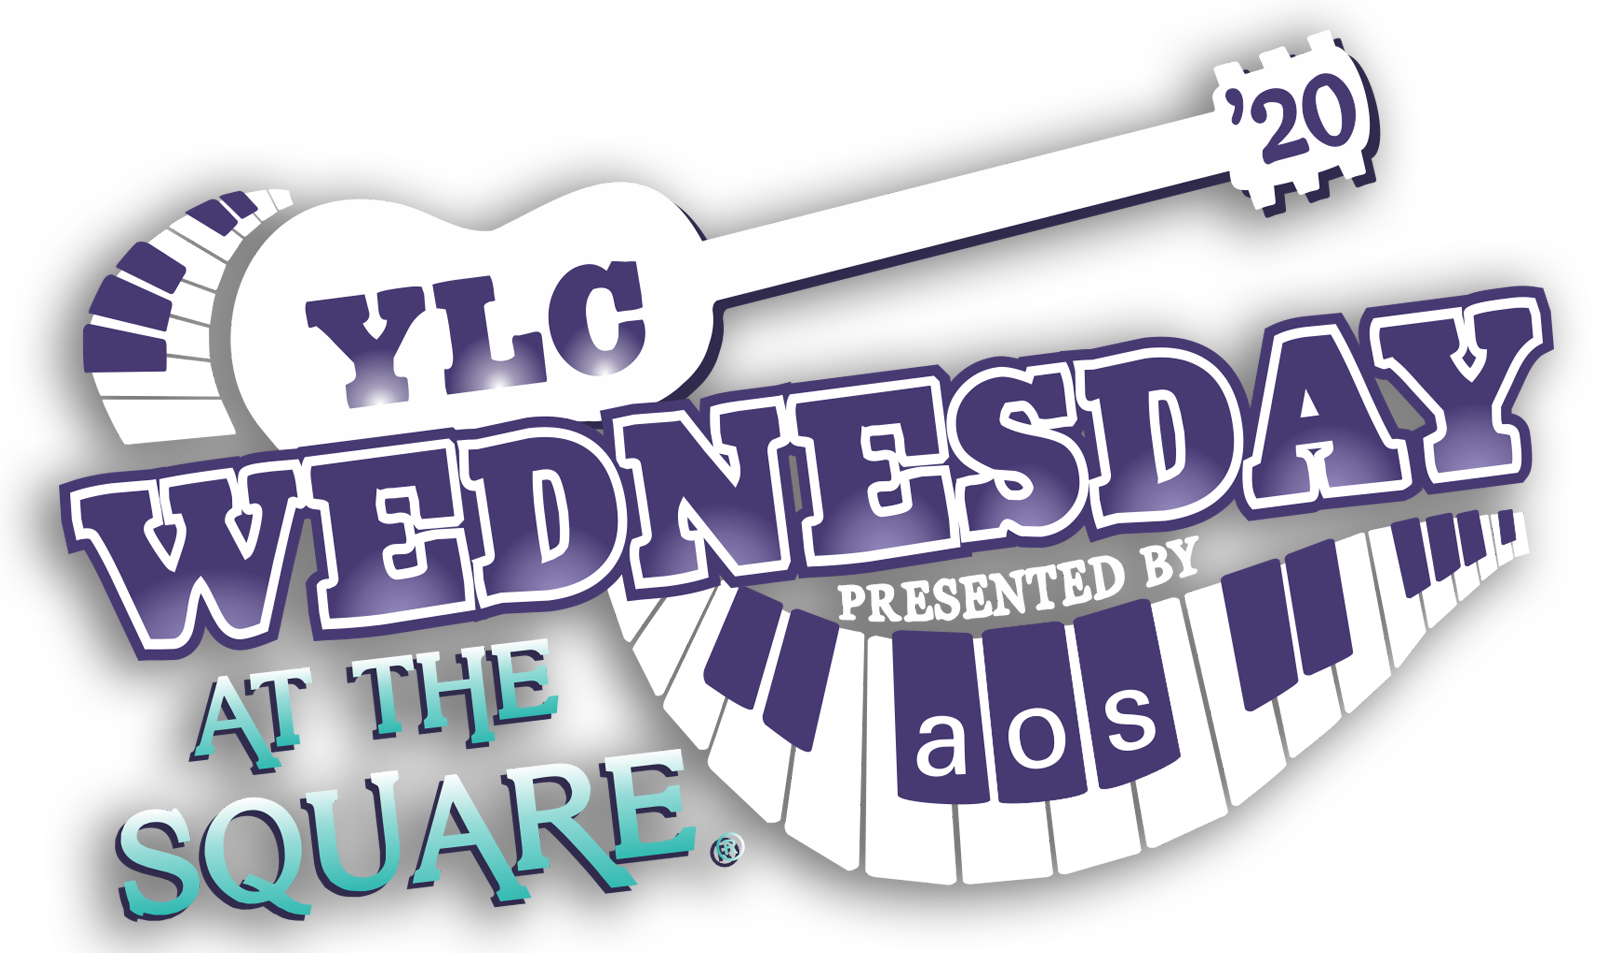 YLC Wednesday at the Square, YLC